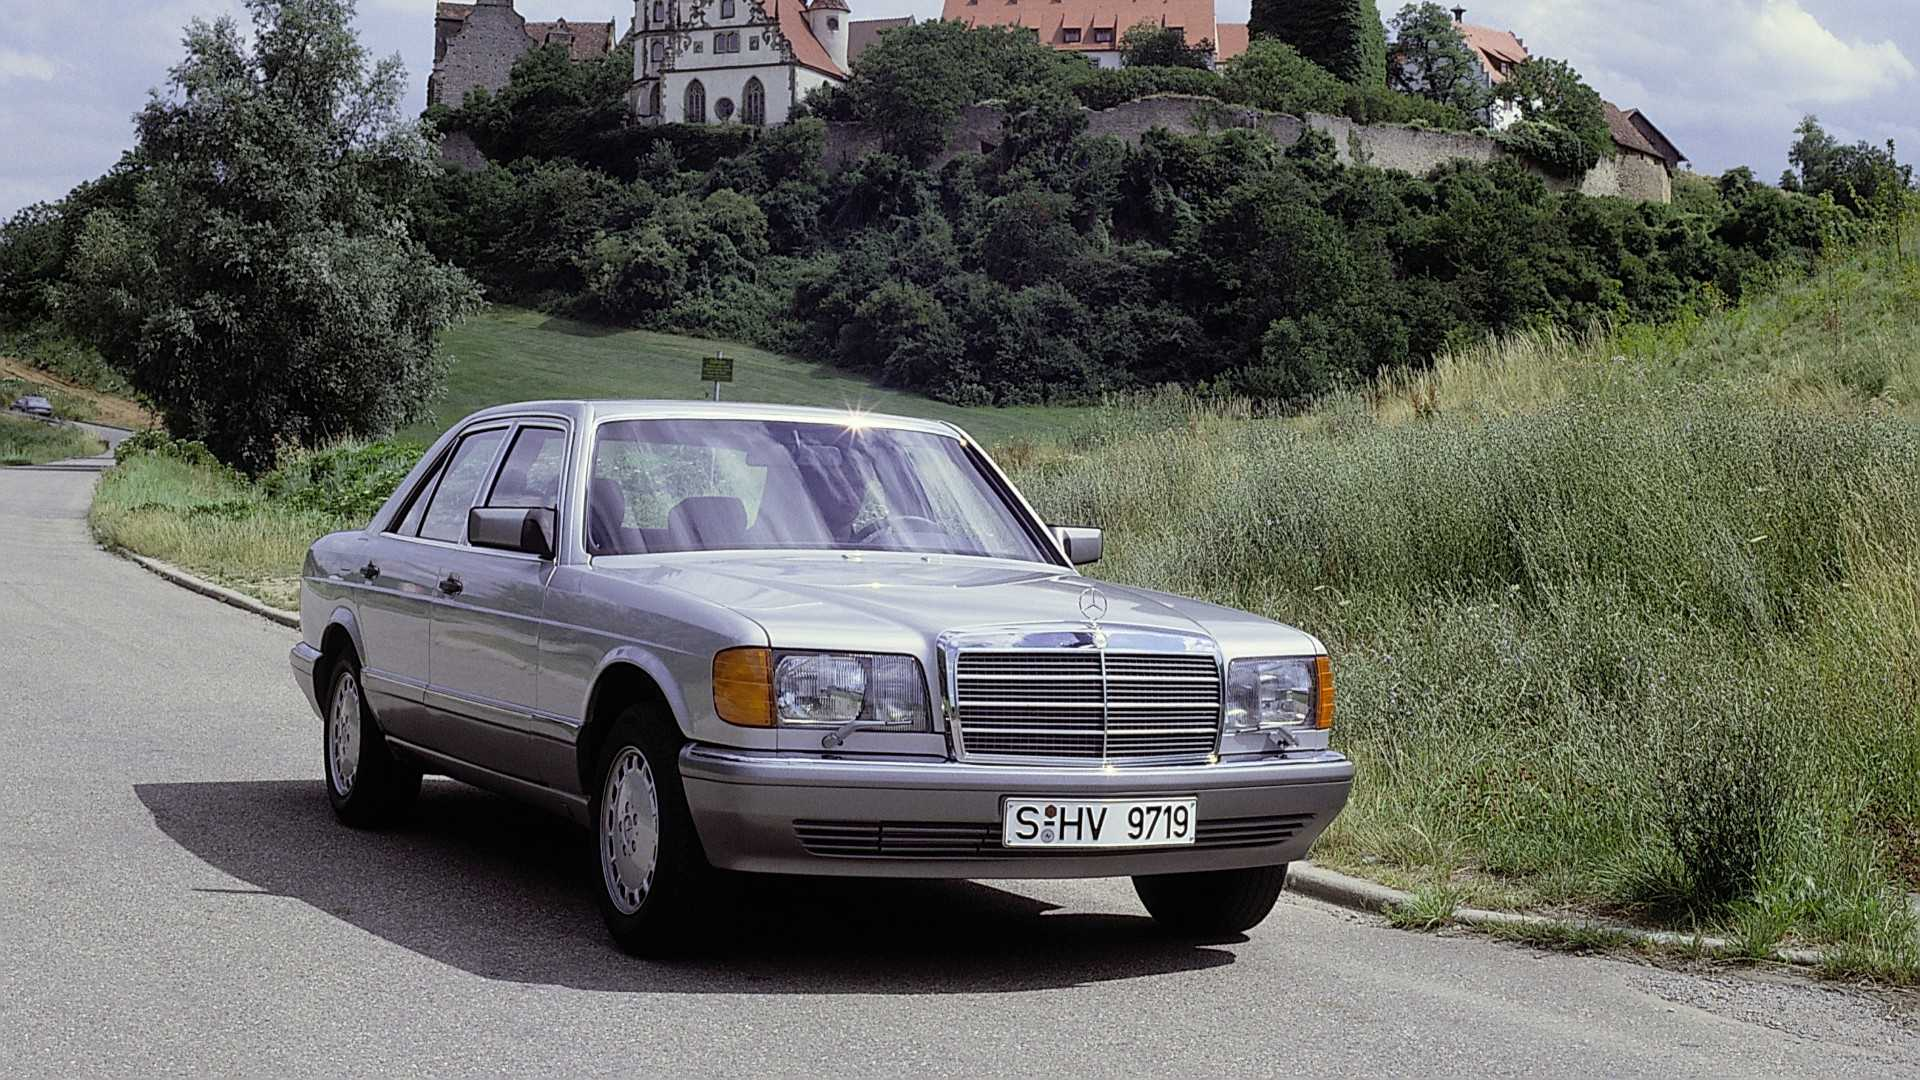 Celebrating 40 Years Of The W126 Mercedes-Benz S-Class